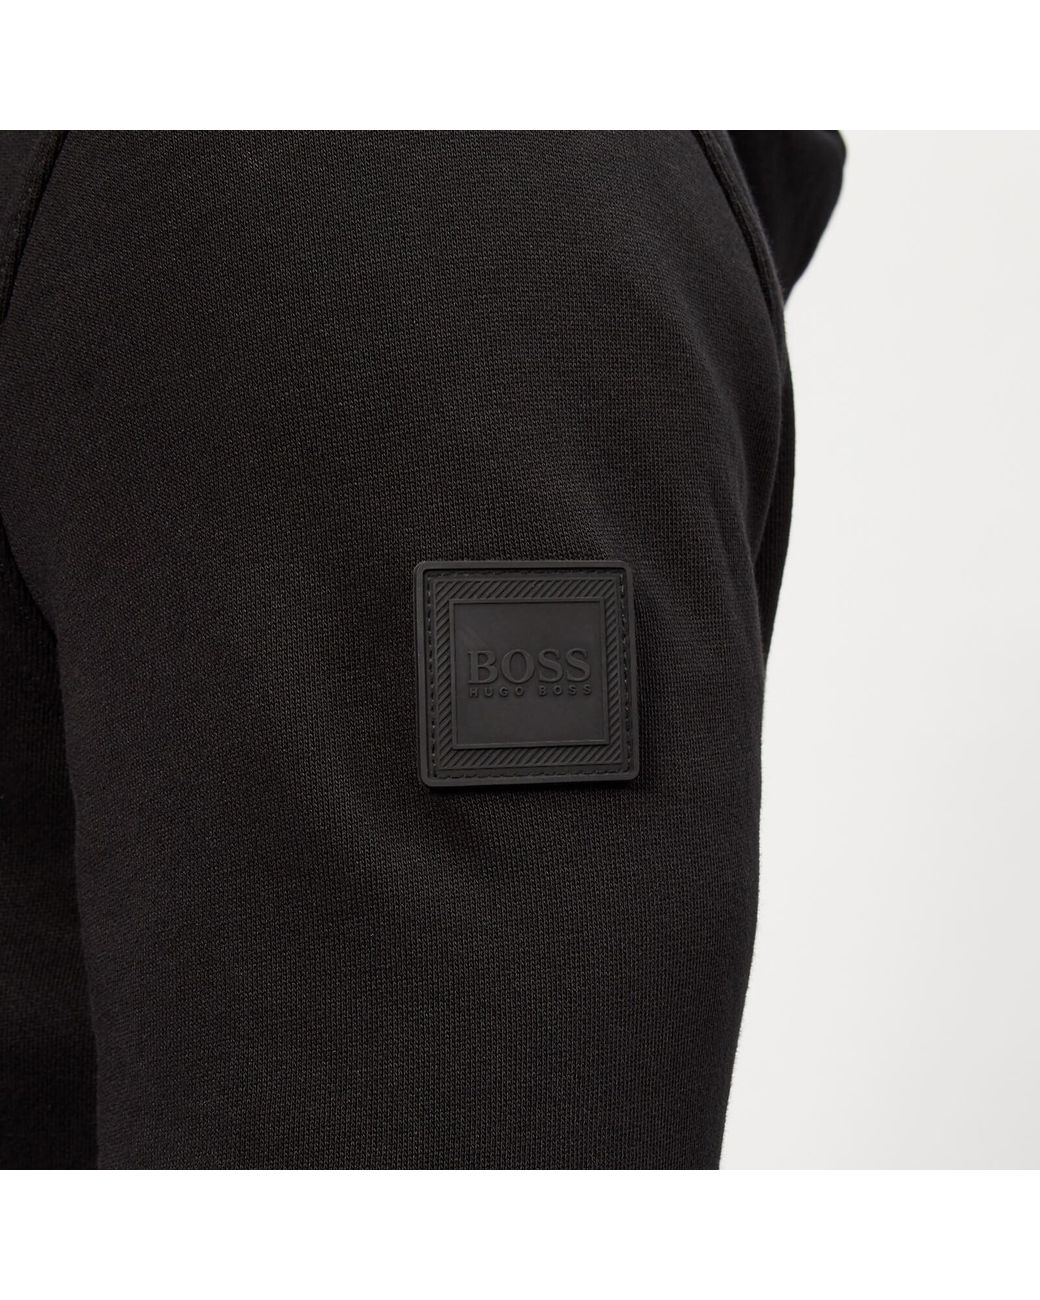 28721a8097ff4 BOSS Zounds Zip Hoodie in Black for Men - Lyst